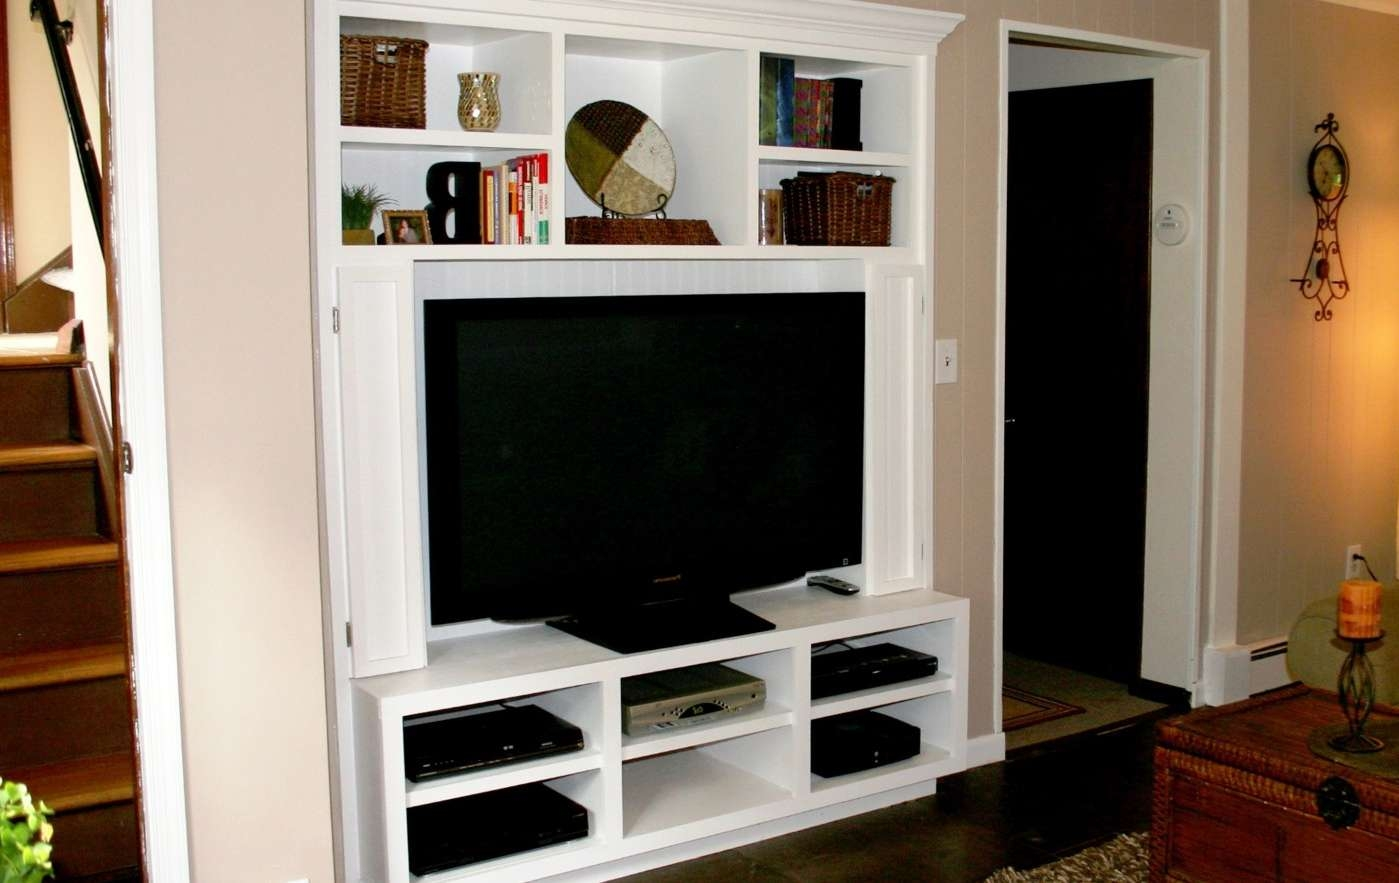 Tv : Fantastic Tv Stand White Gloss Ebay Incredible Wayfair Tv With Regard To Ovid White Tv Stands (View 14 of 15)